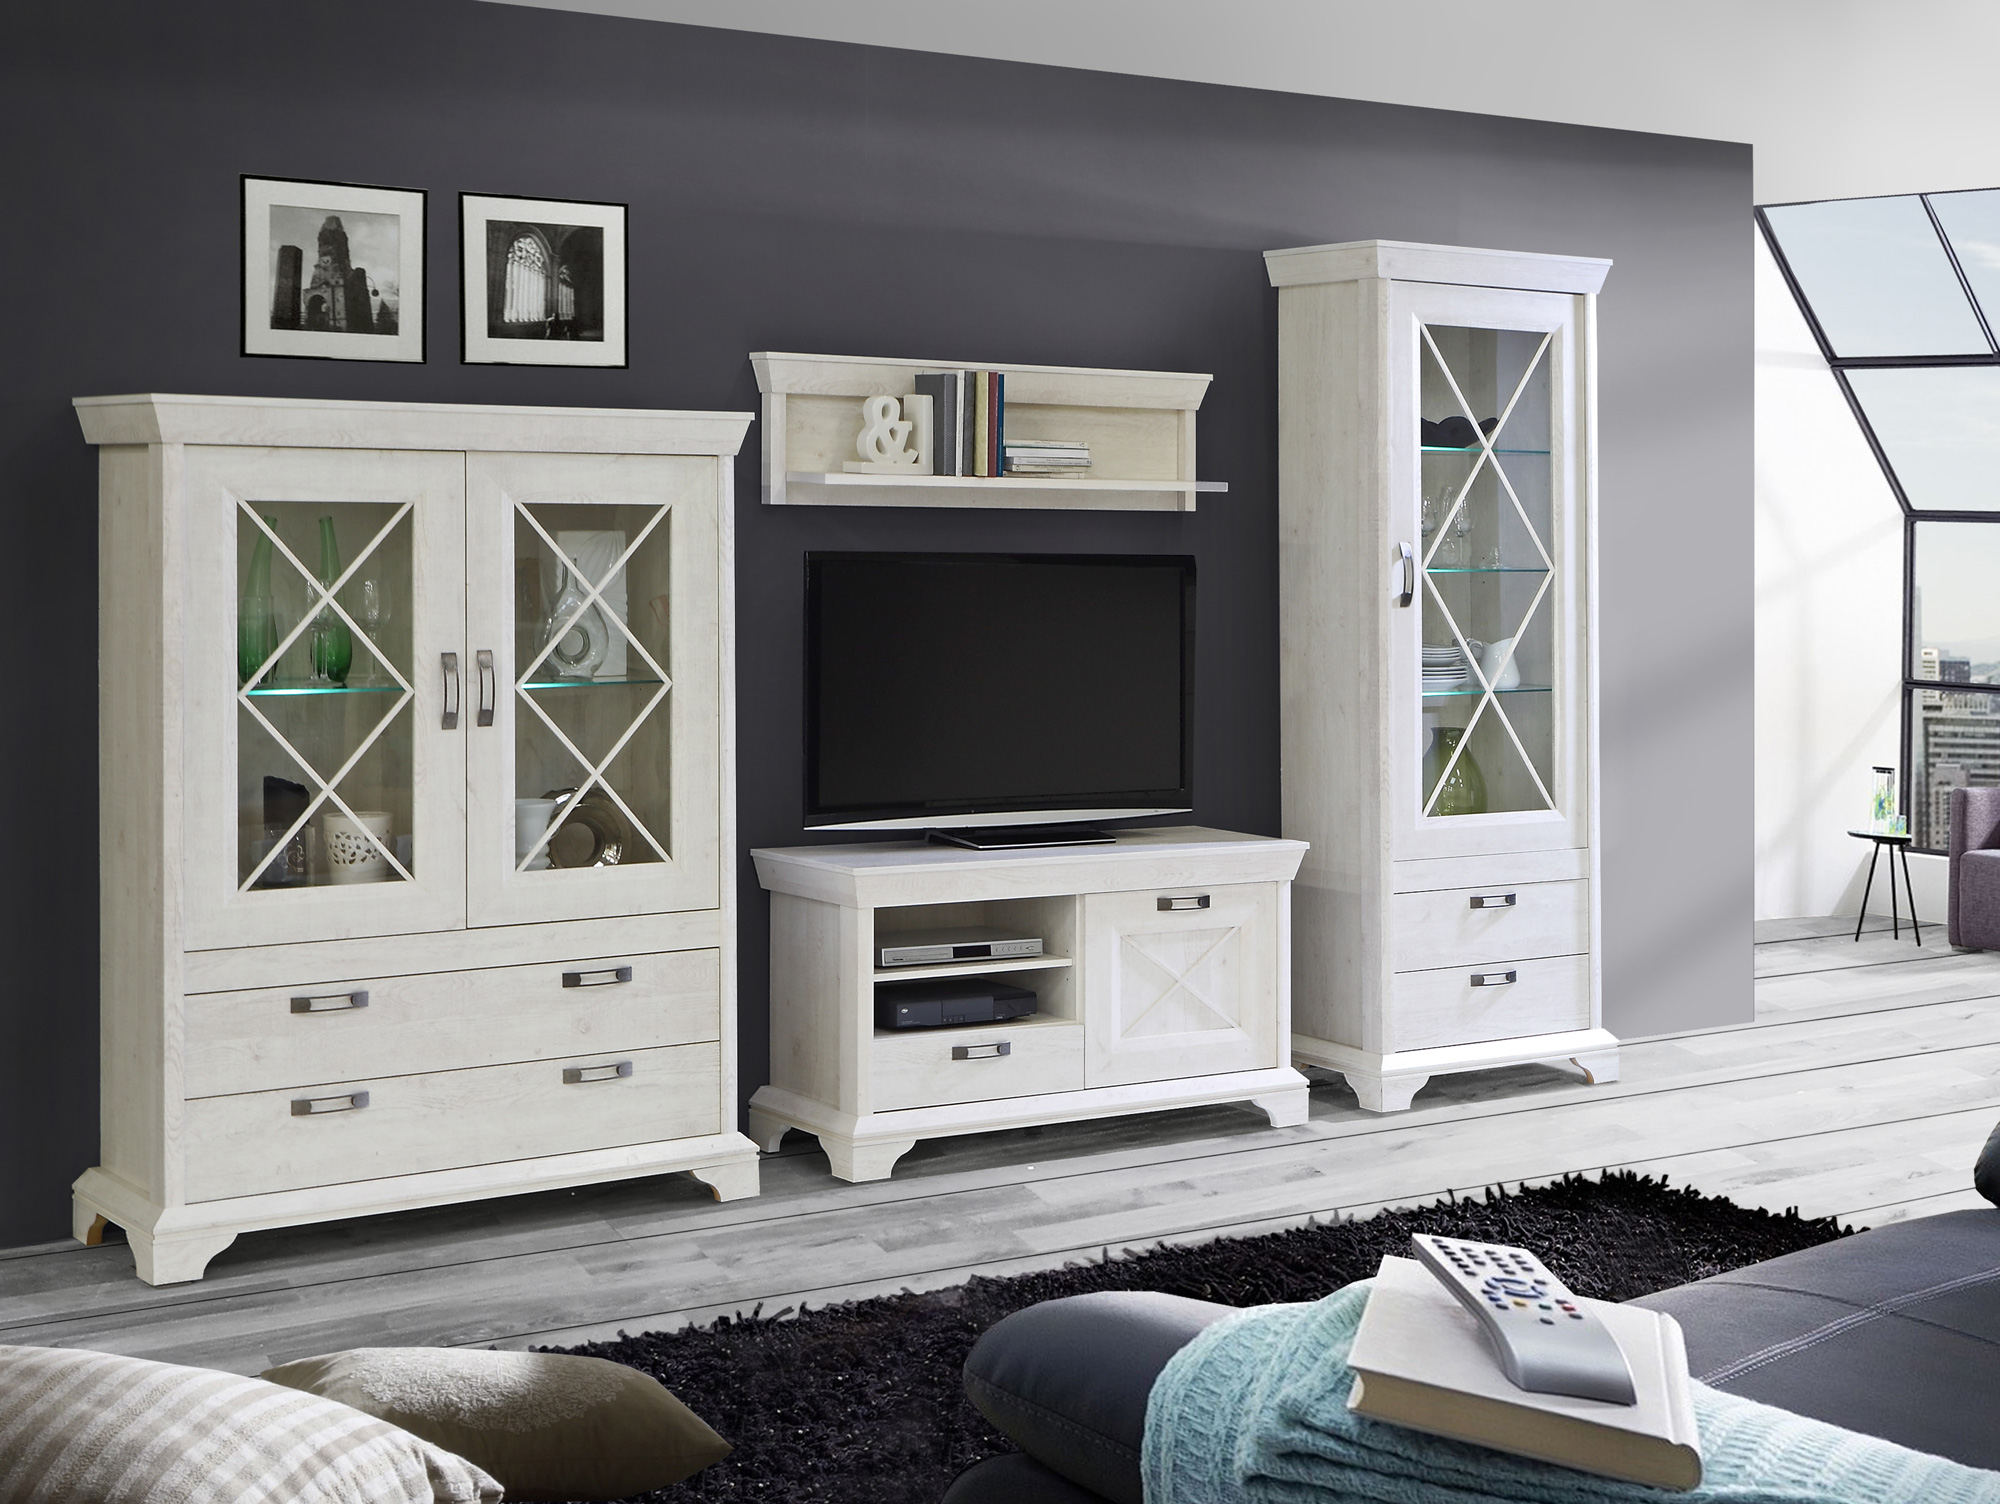 kada wohnwand pinie weiss. Black Bedroom Furniture Sets. Home Design Ideas